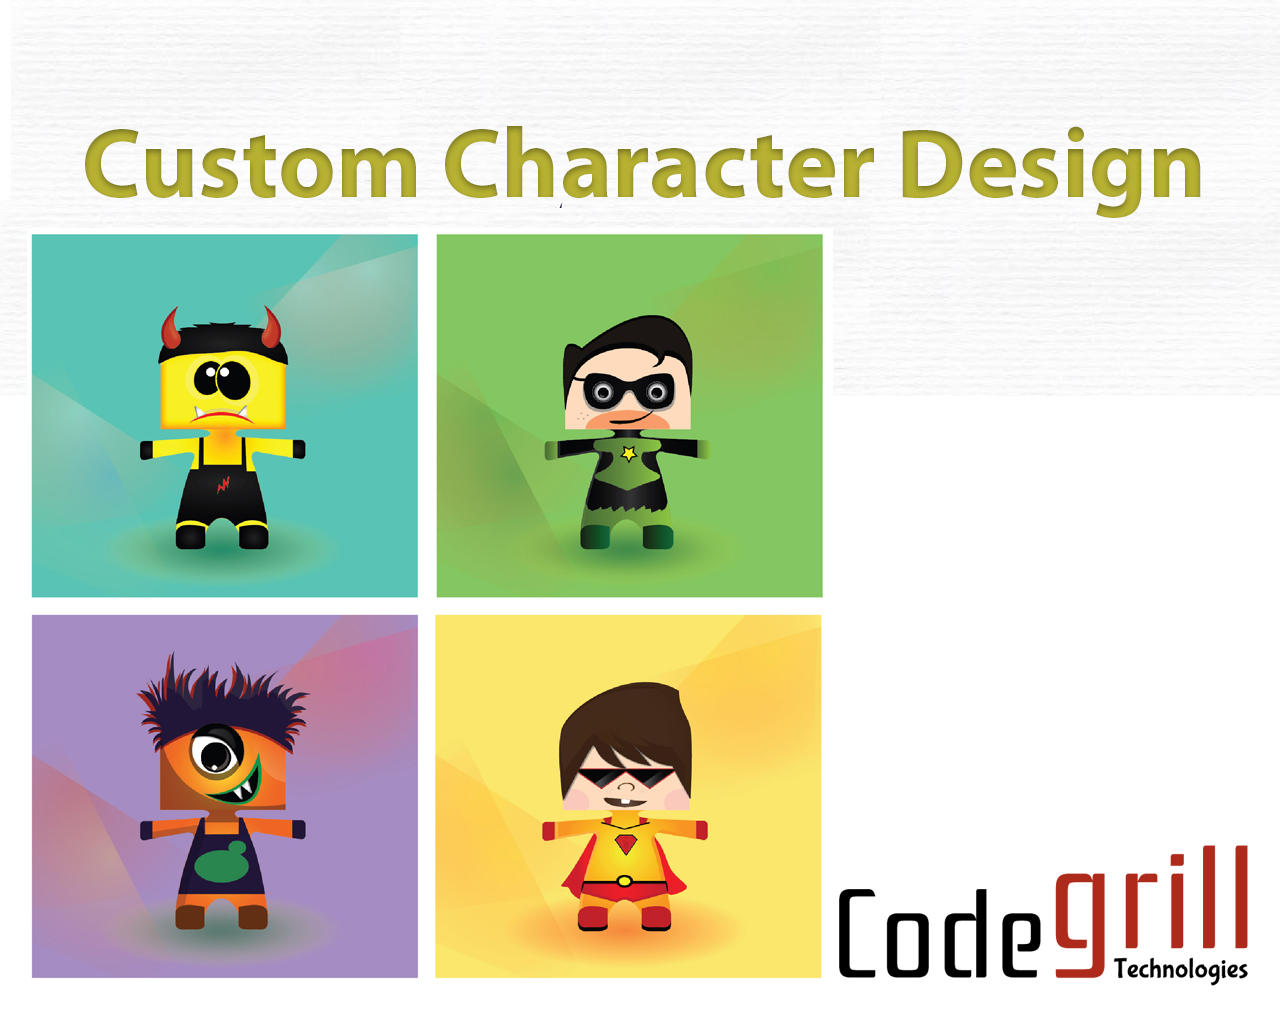 Character Design Web : Character design for games apps website by codegrill